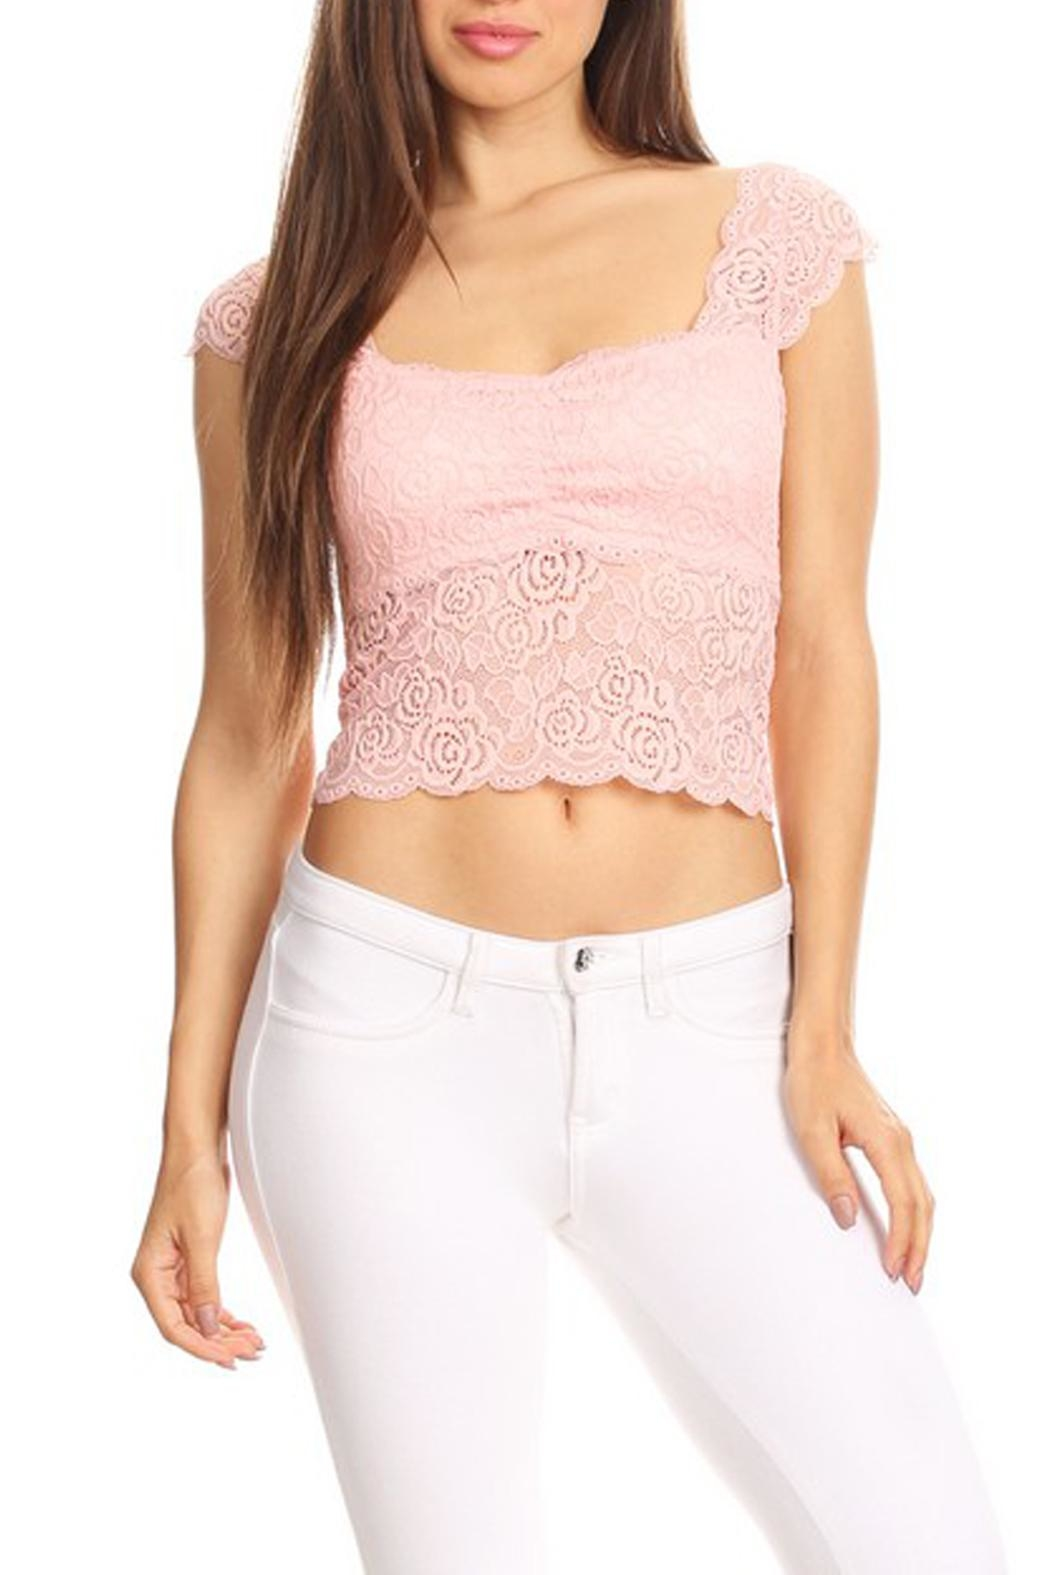 JChronicles Lace Crop Top - Main Image